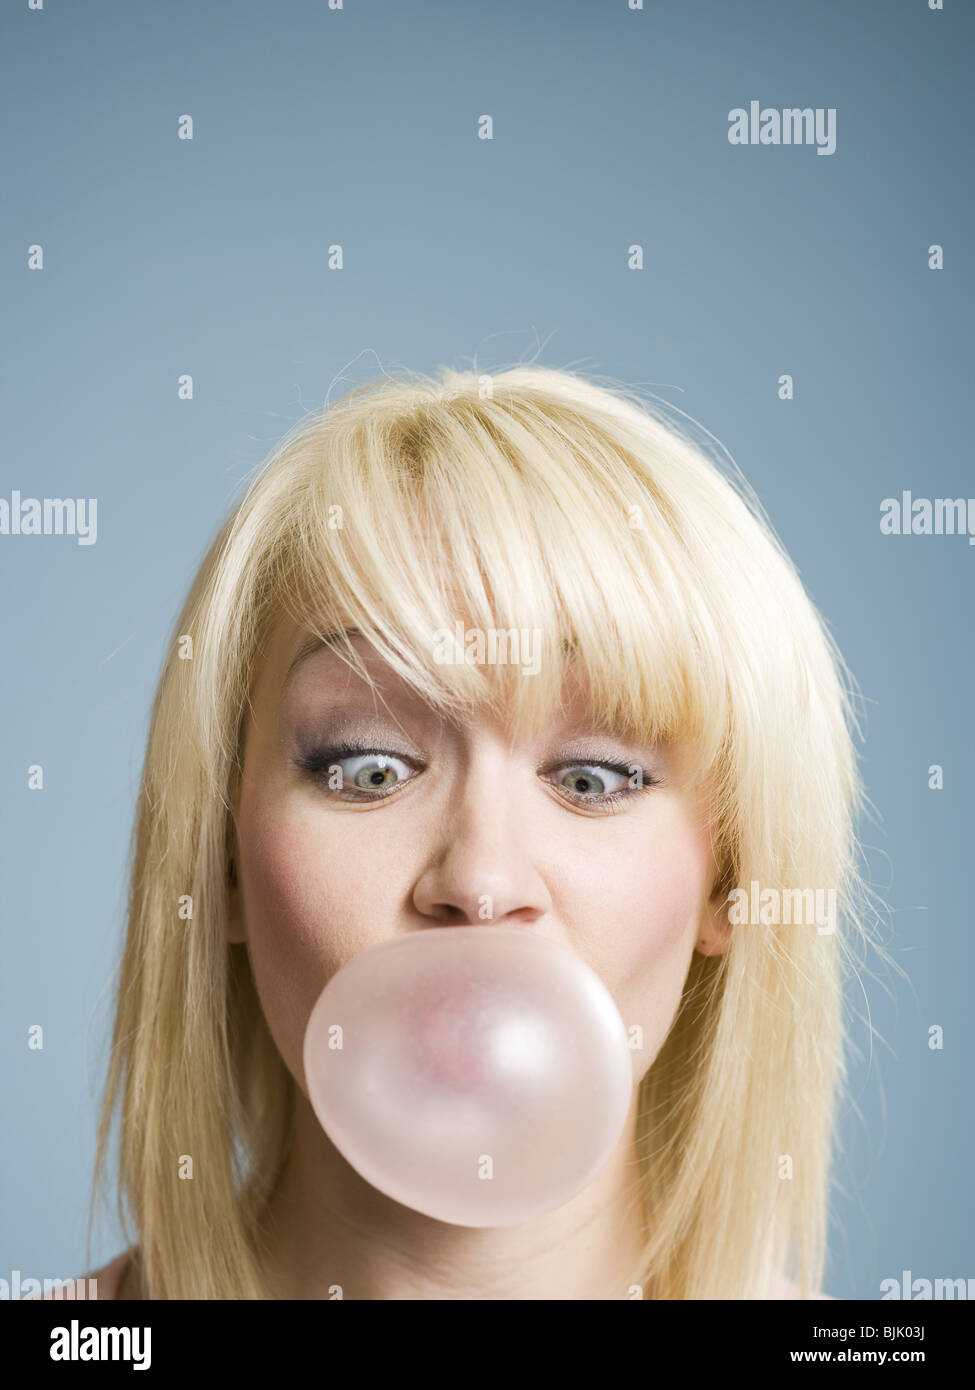 Woman blowing bubbles with chewing gum - Stock Image